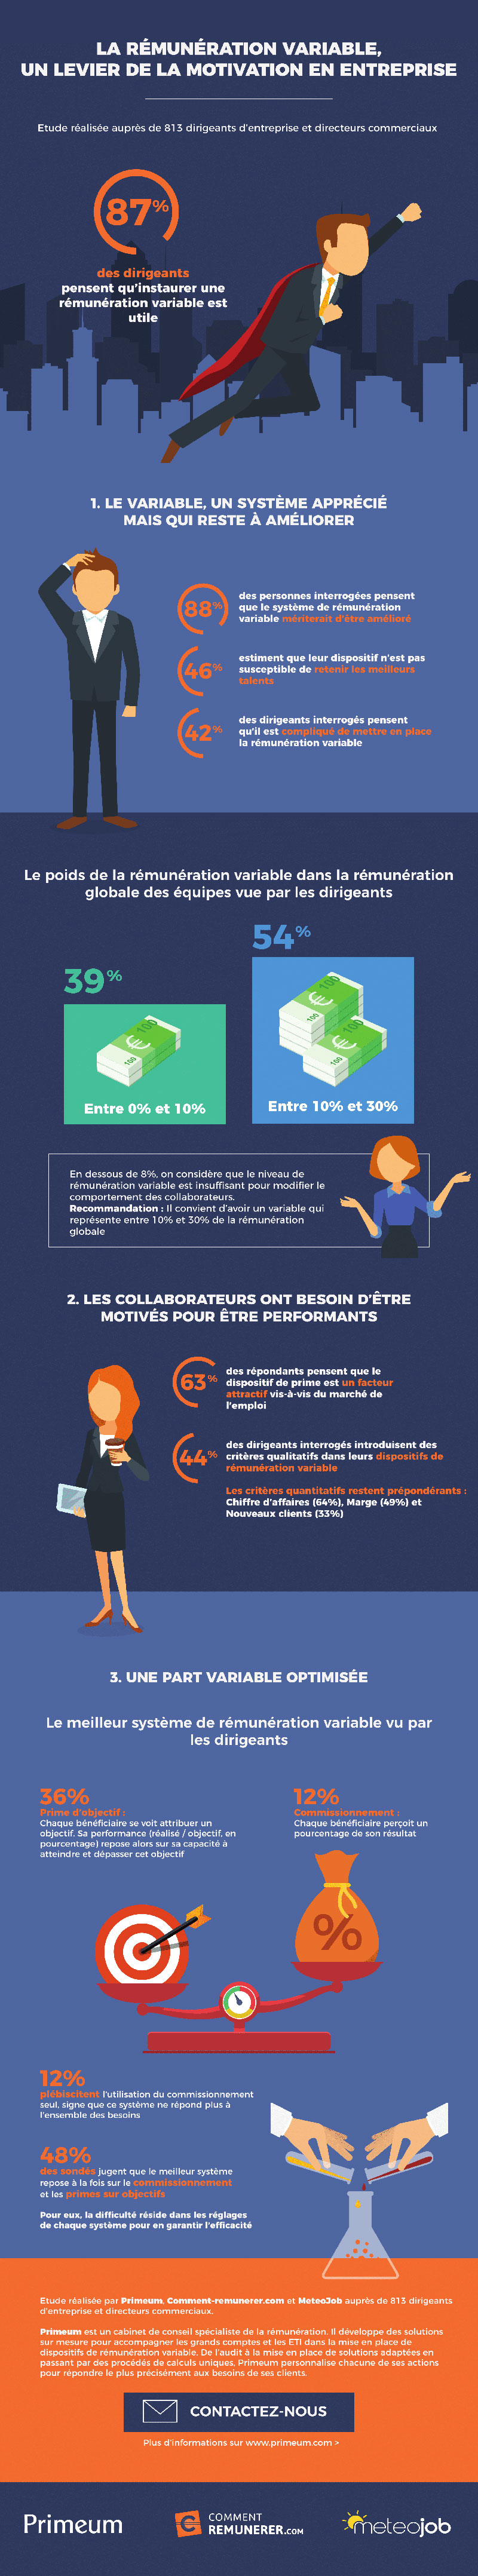 Infographie-Barometre-remuneration-variable